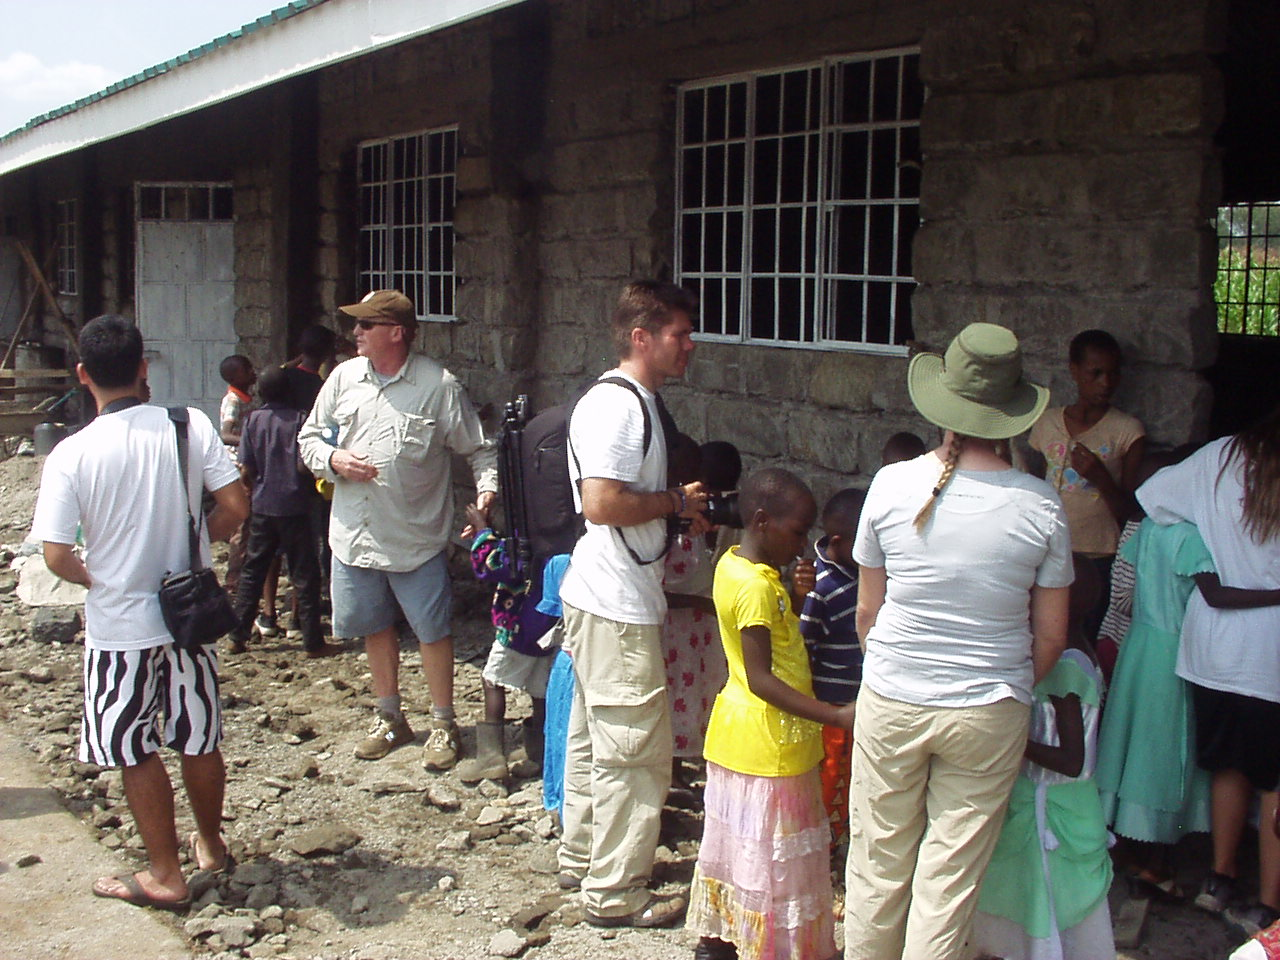 Assessing work to be done in the school building